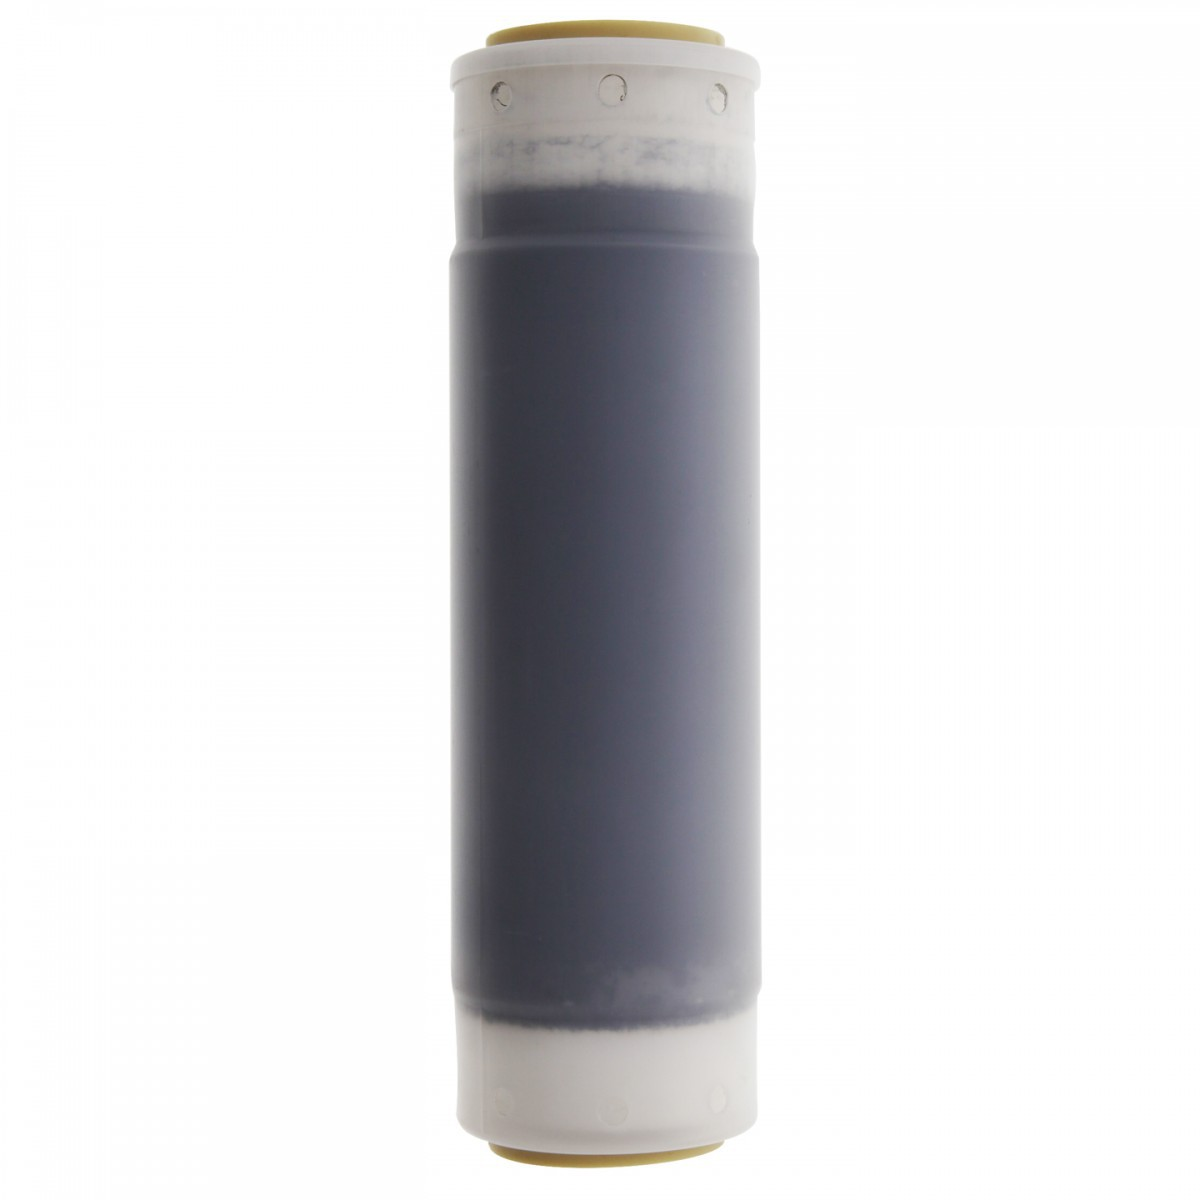 10 X 2 5 Granular Activated Carbon Replacement Filter 0 5